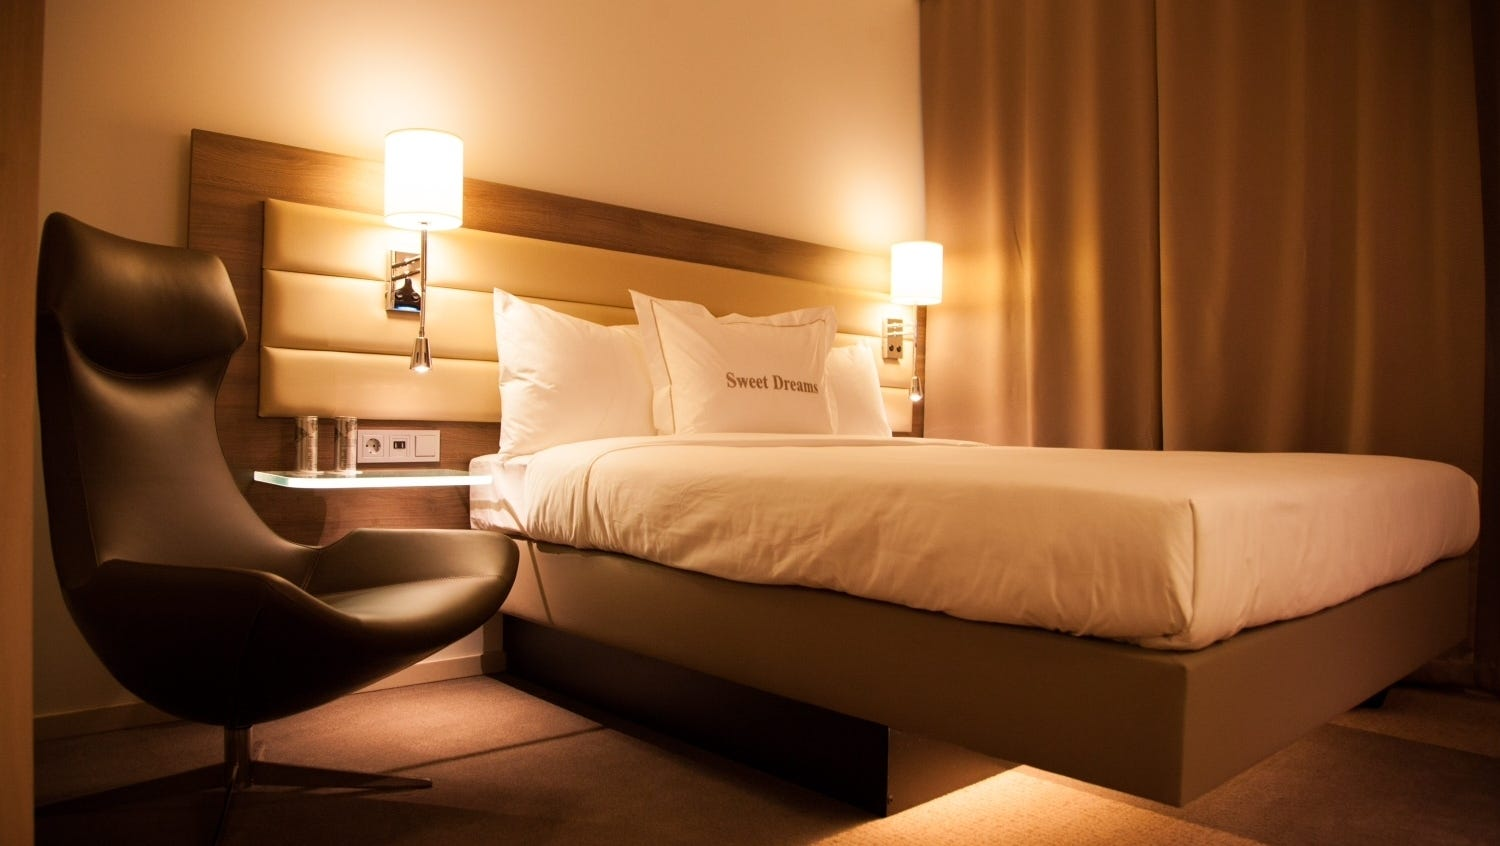 Dream job: sleep in hotels and check bed comfort